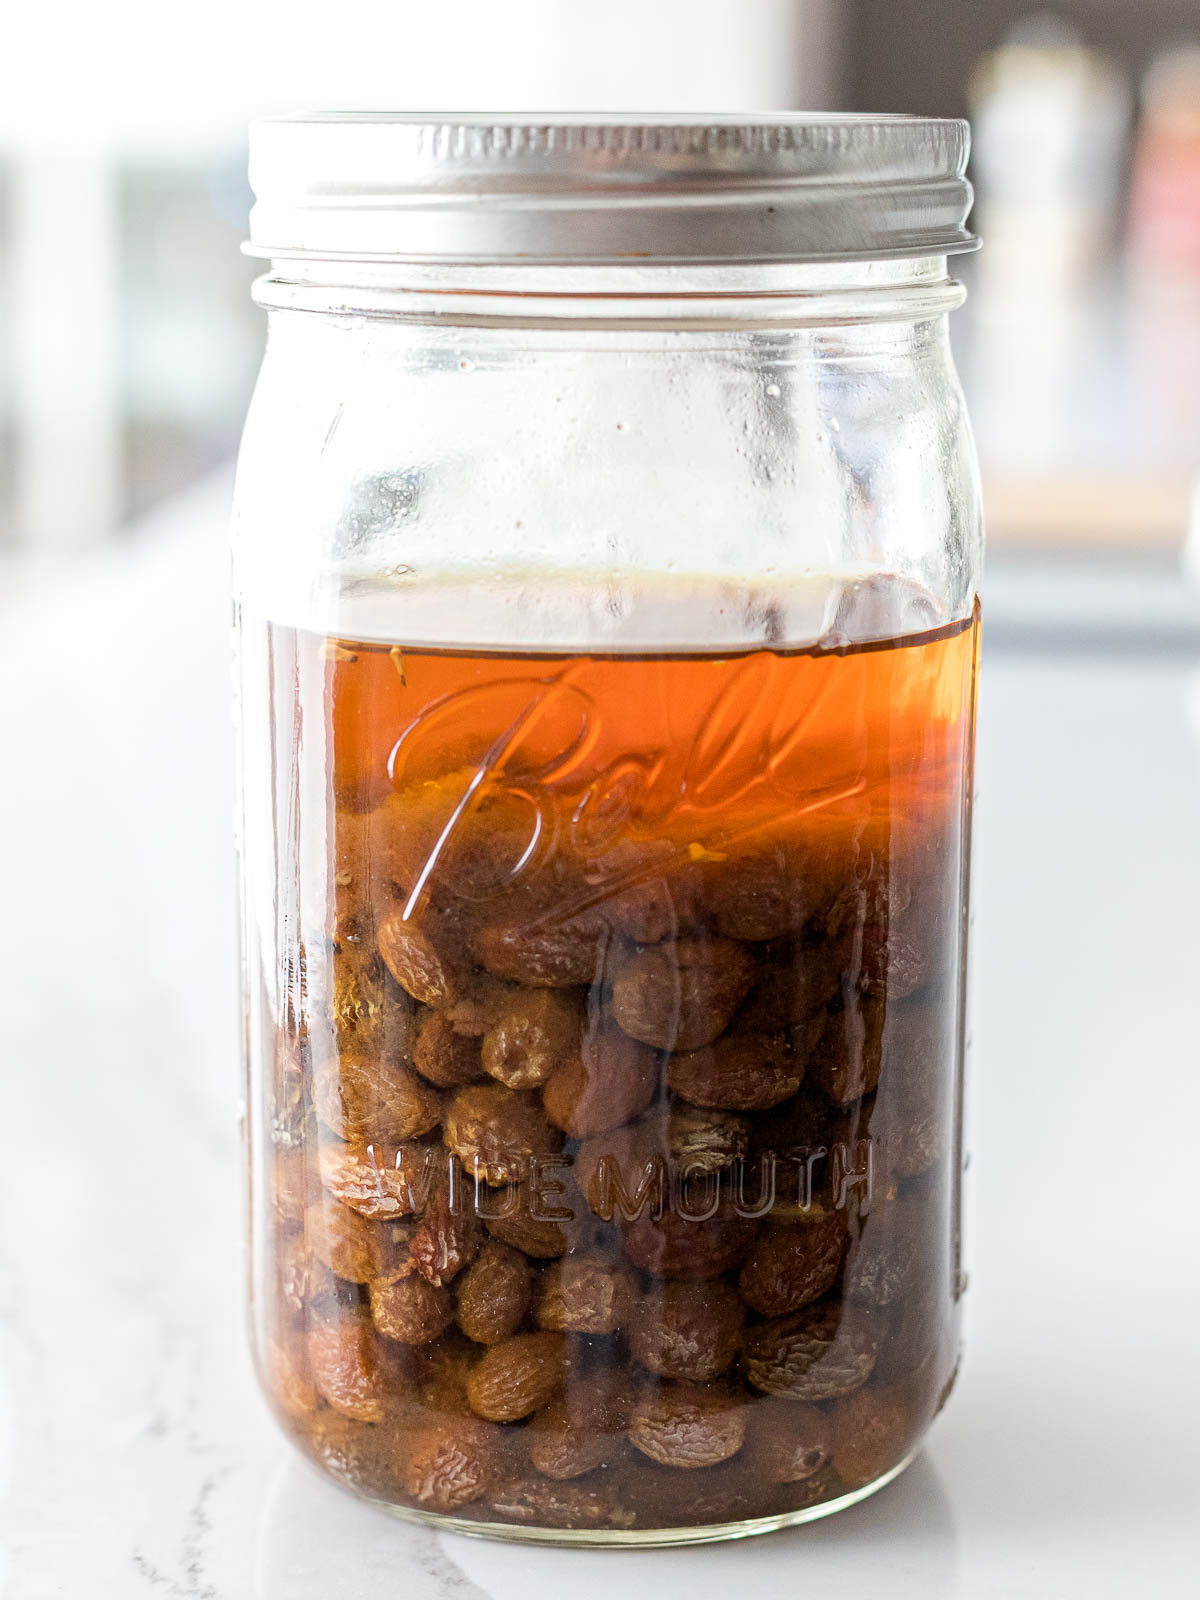 raisins sitting in water inside a glass mason jar with a screw top lid